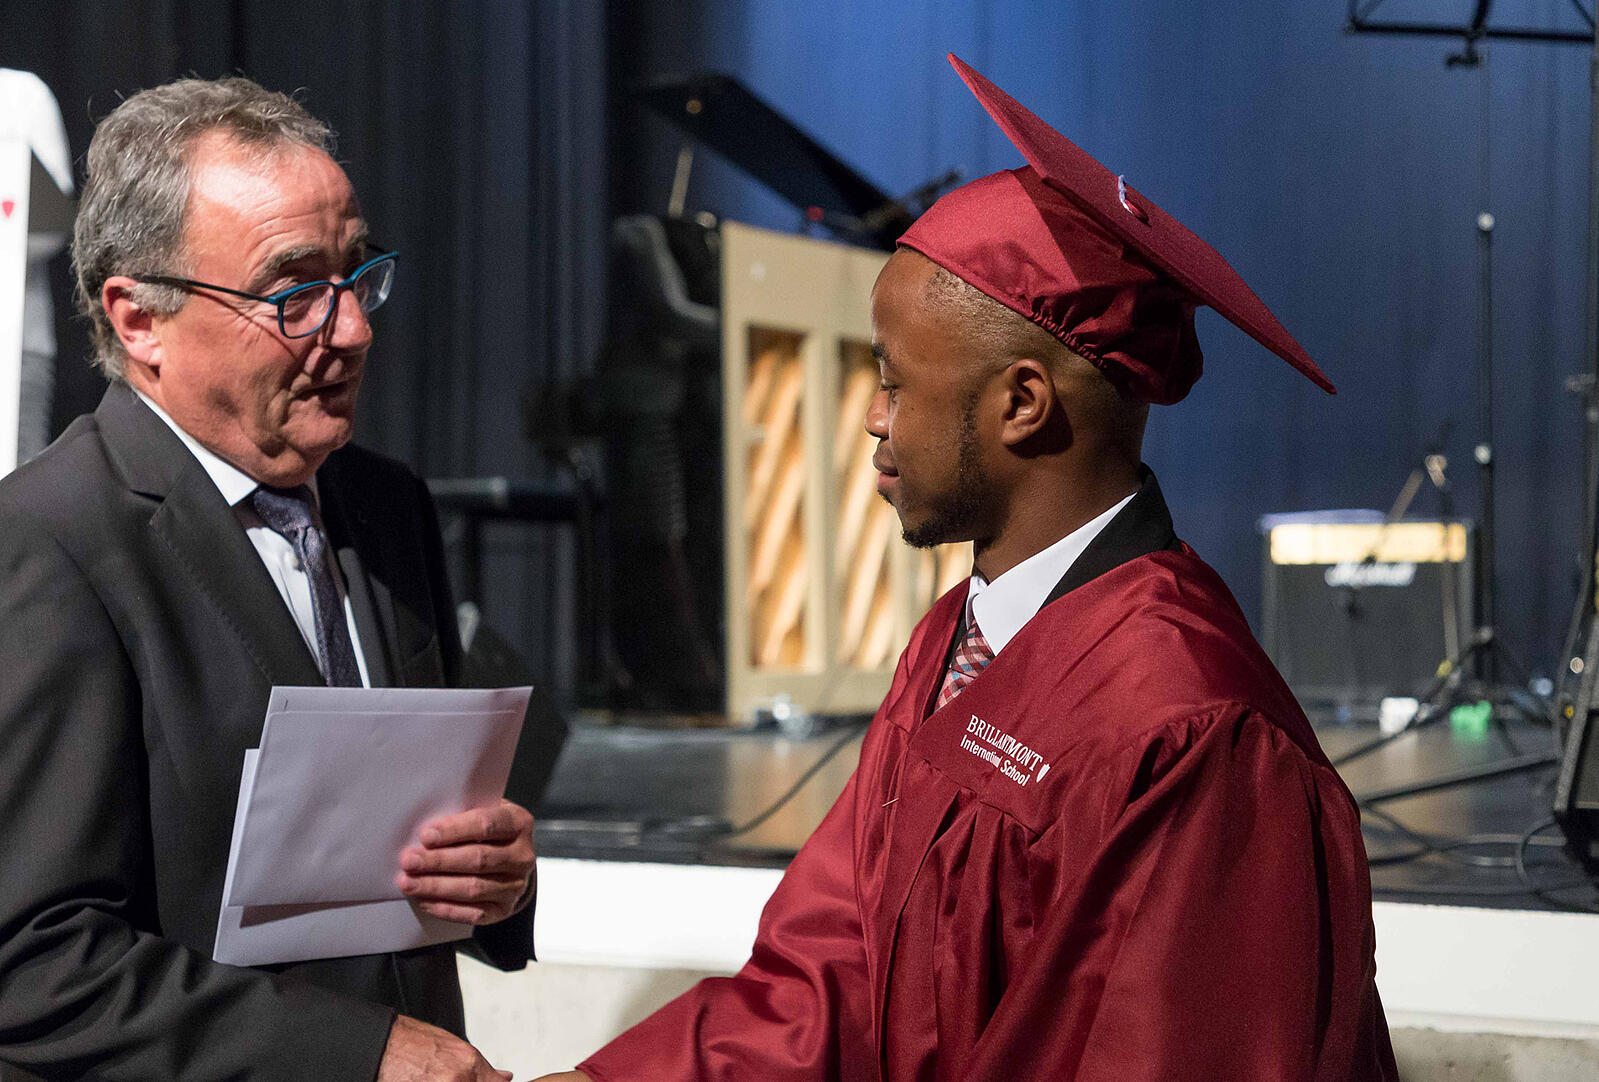 Philippe-Pasche-at-graduation